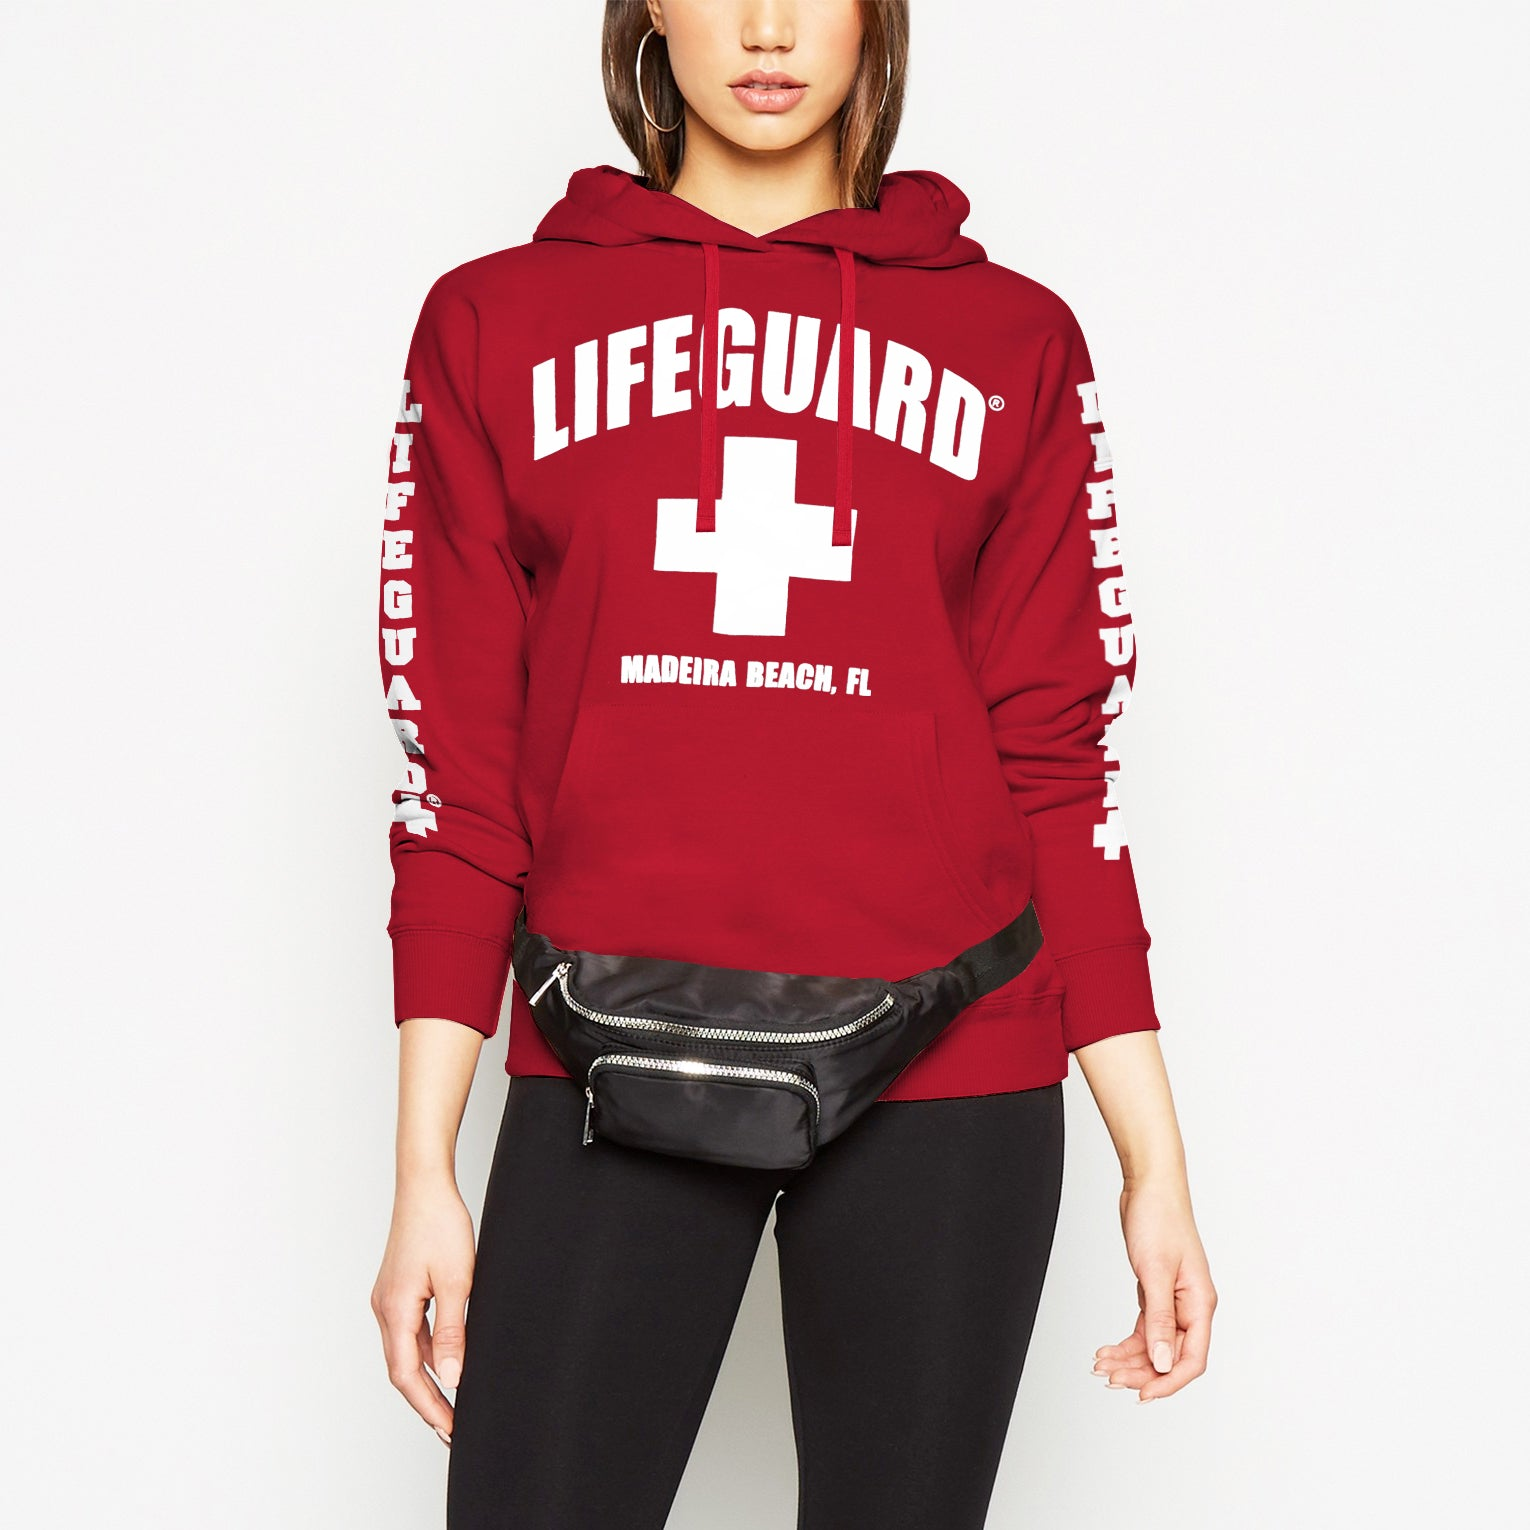 Life Guard Fleece Pullover Hoodie For Women-Red-NA9790